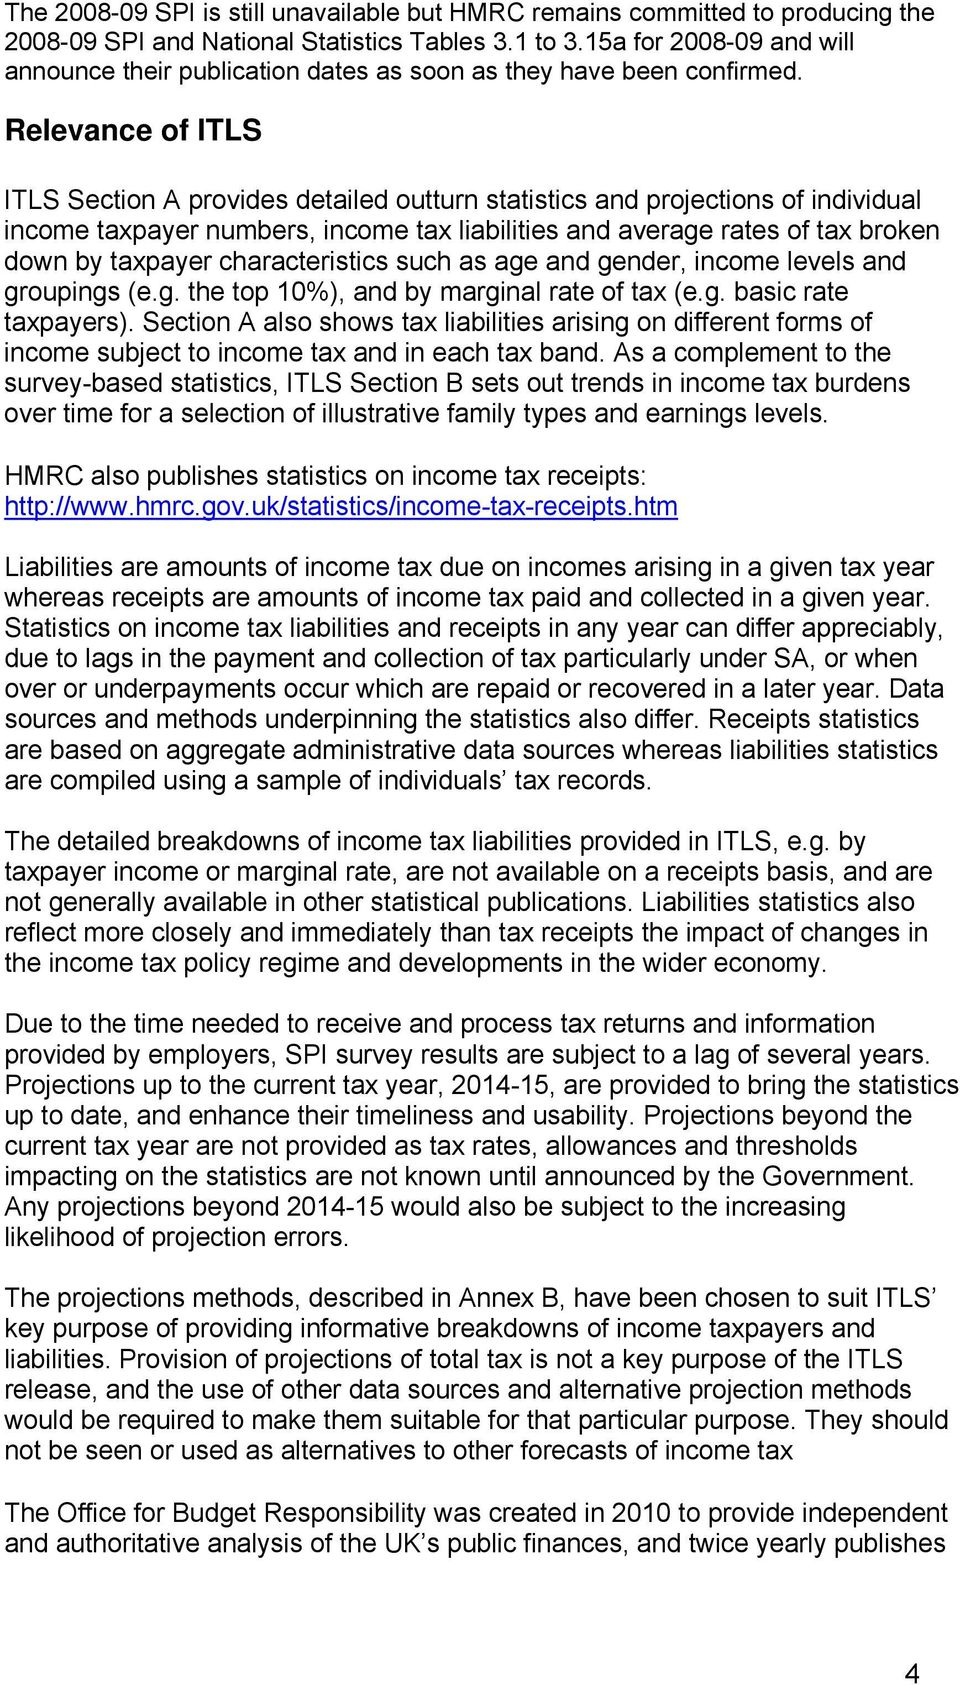 Relevance of ITLS ITLS Section A provides detailed outturn statistics and projections of individual income taxpayer numbers, income tax liabilities and average rates of tax broken down by taxpayer